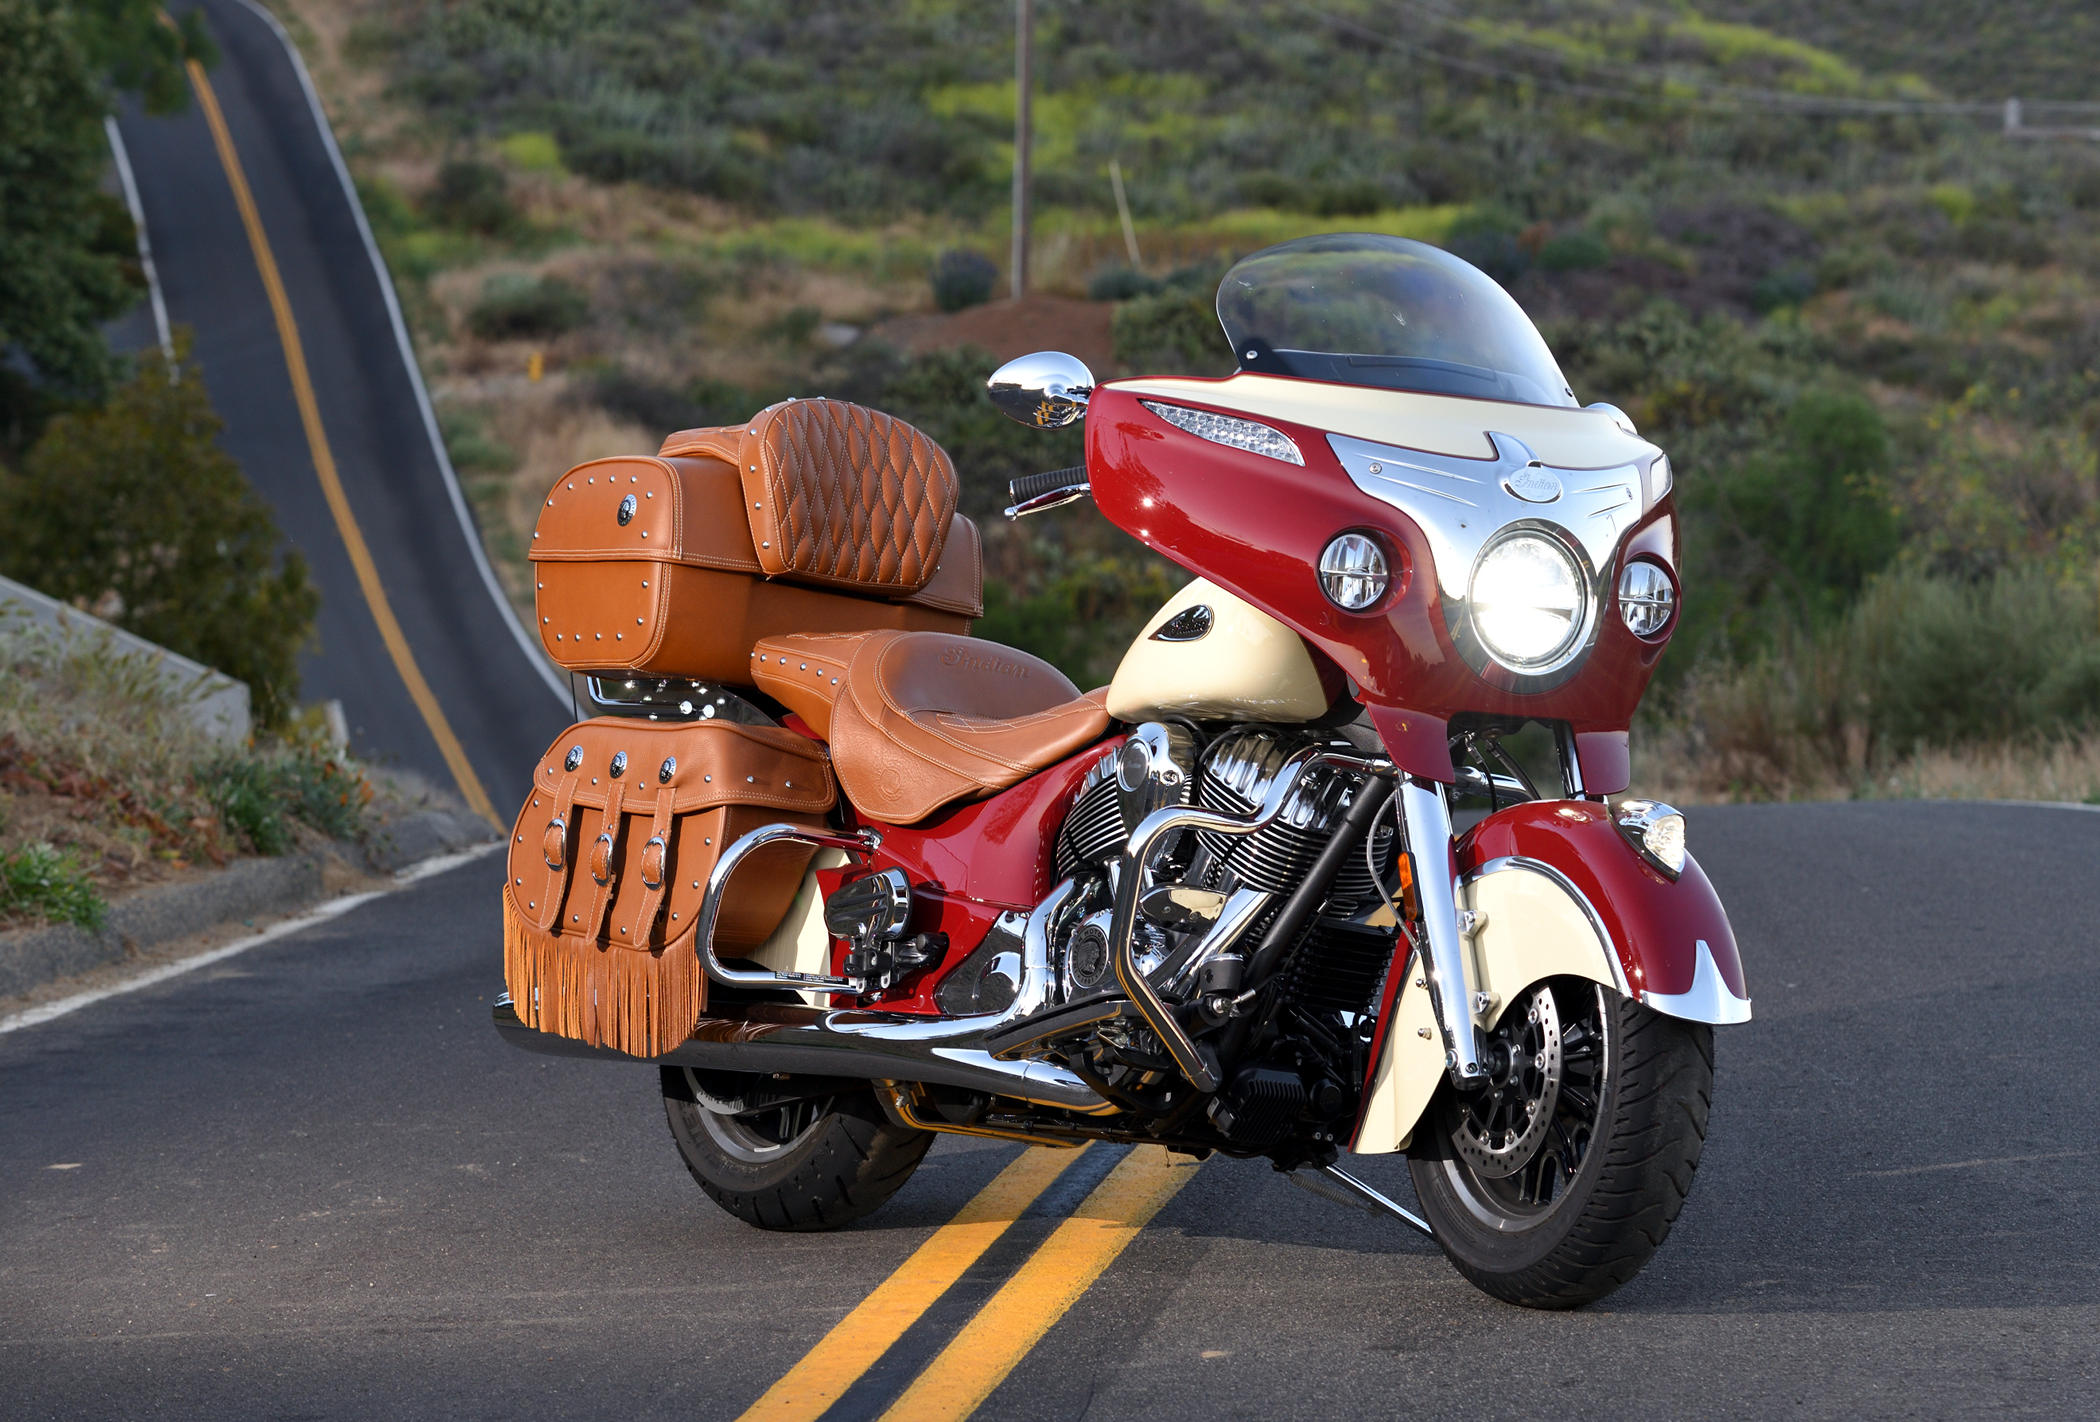 All Indian Motorcycles Receive All-New Remus Exhausts - autoevolution